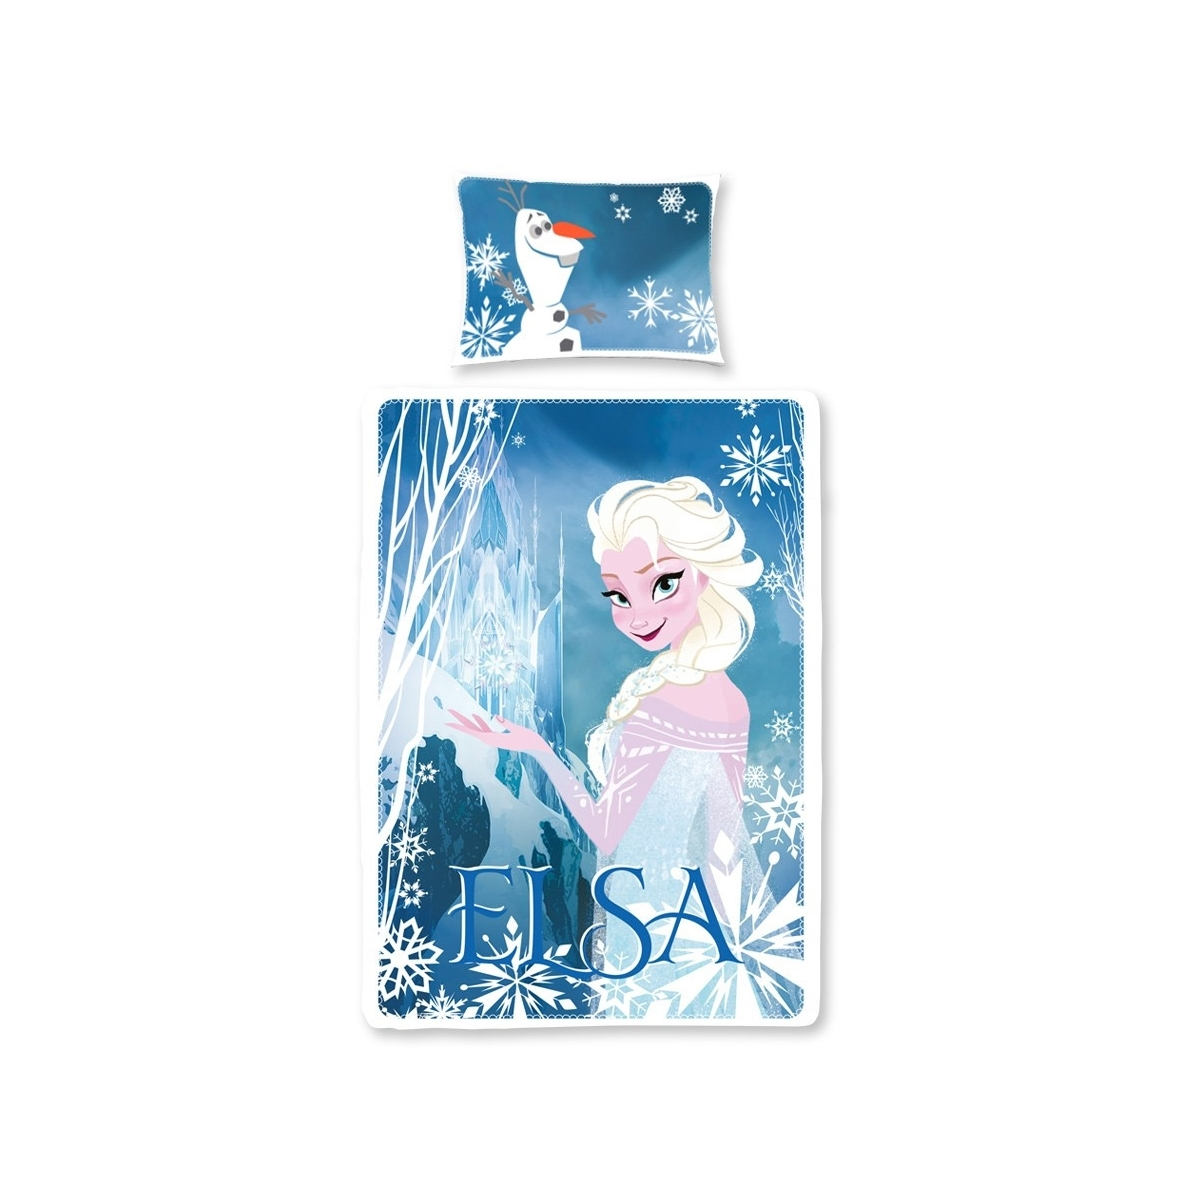 la reine des neiges parure de lit elsa 135 x 200 cm figurine discount. Black Bedroom Furniture Sets. Home Design Ideas